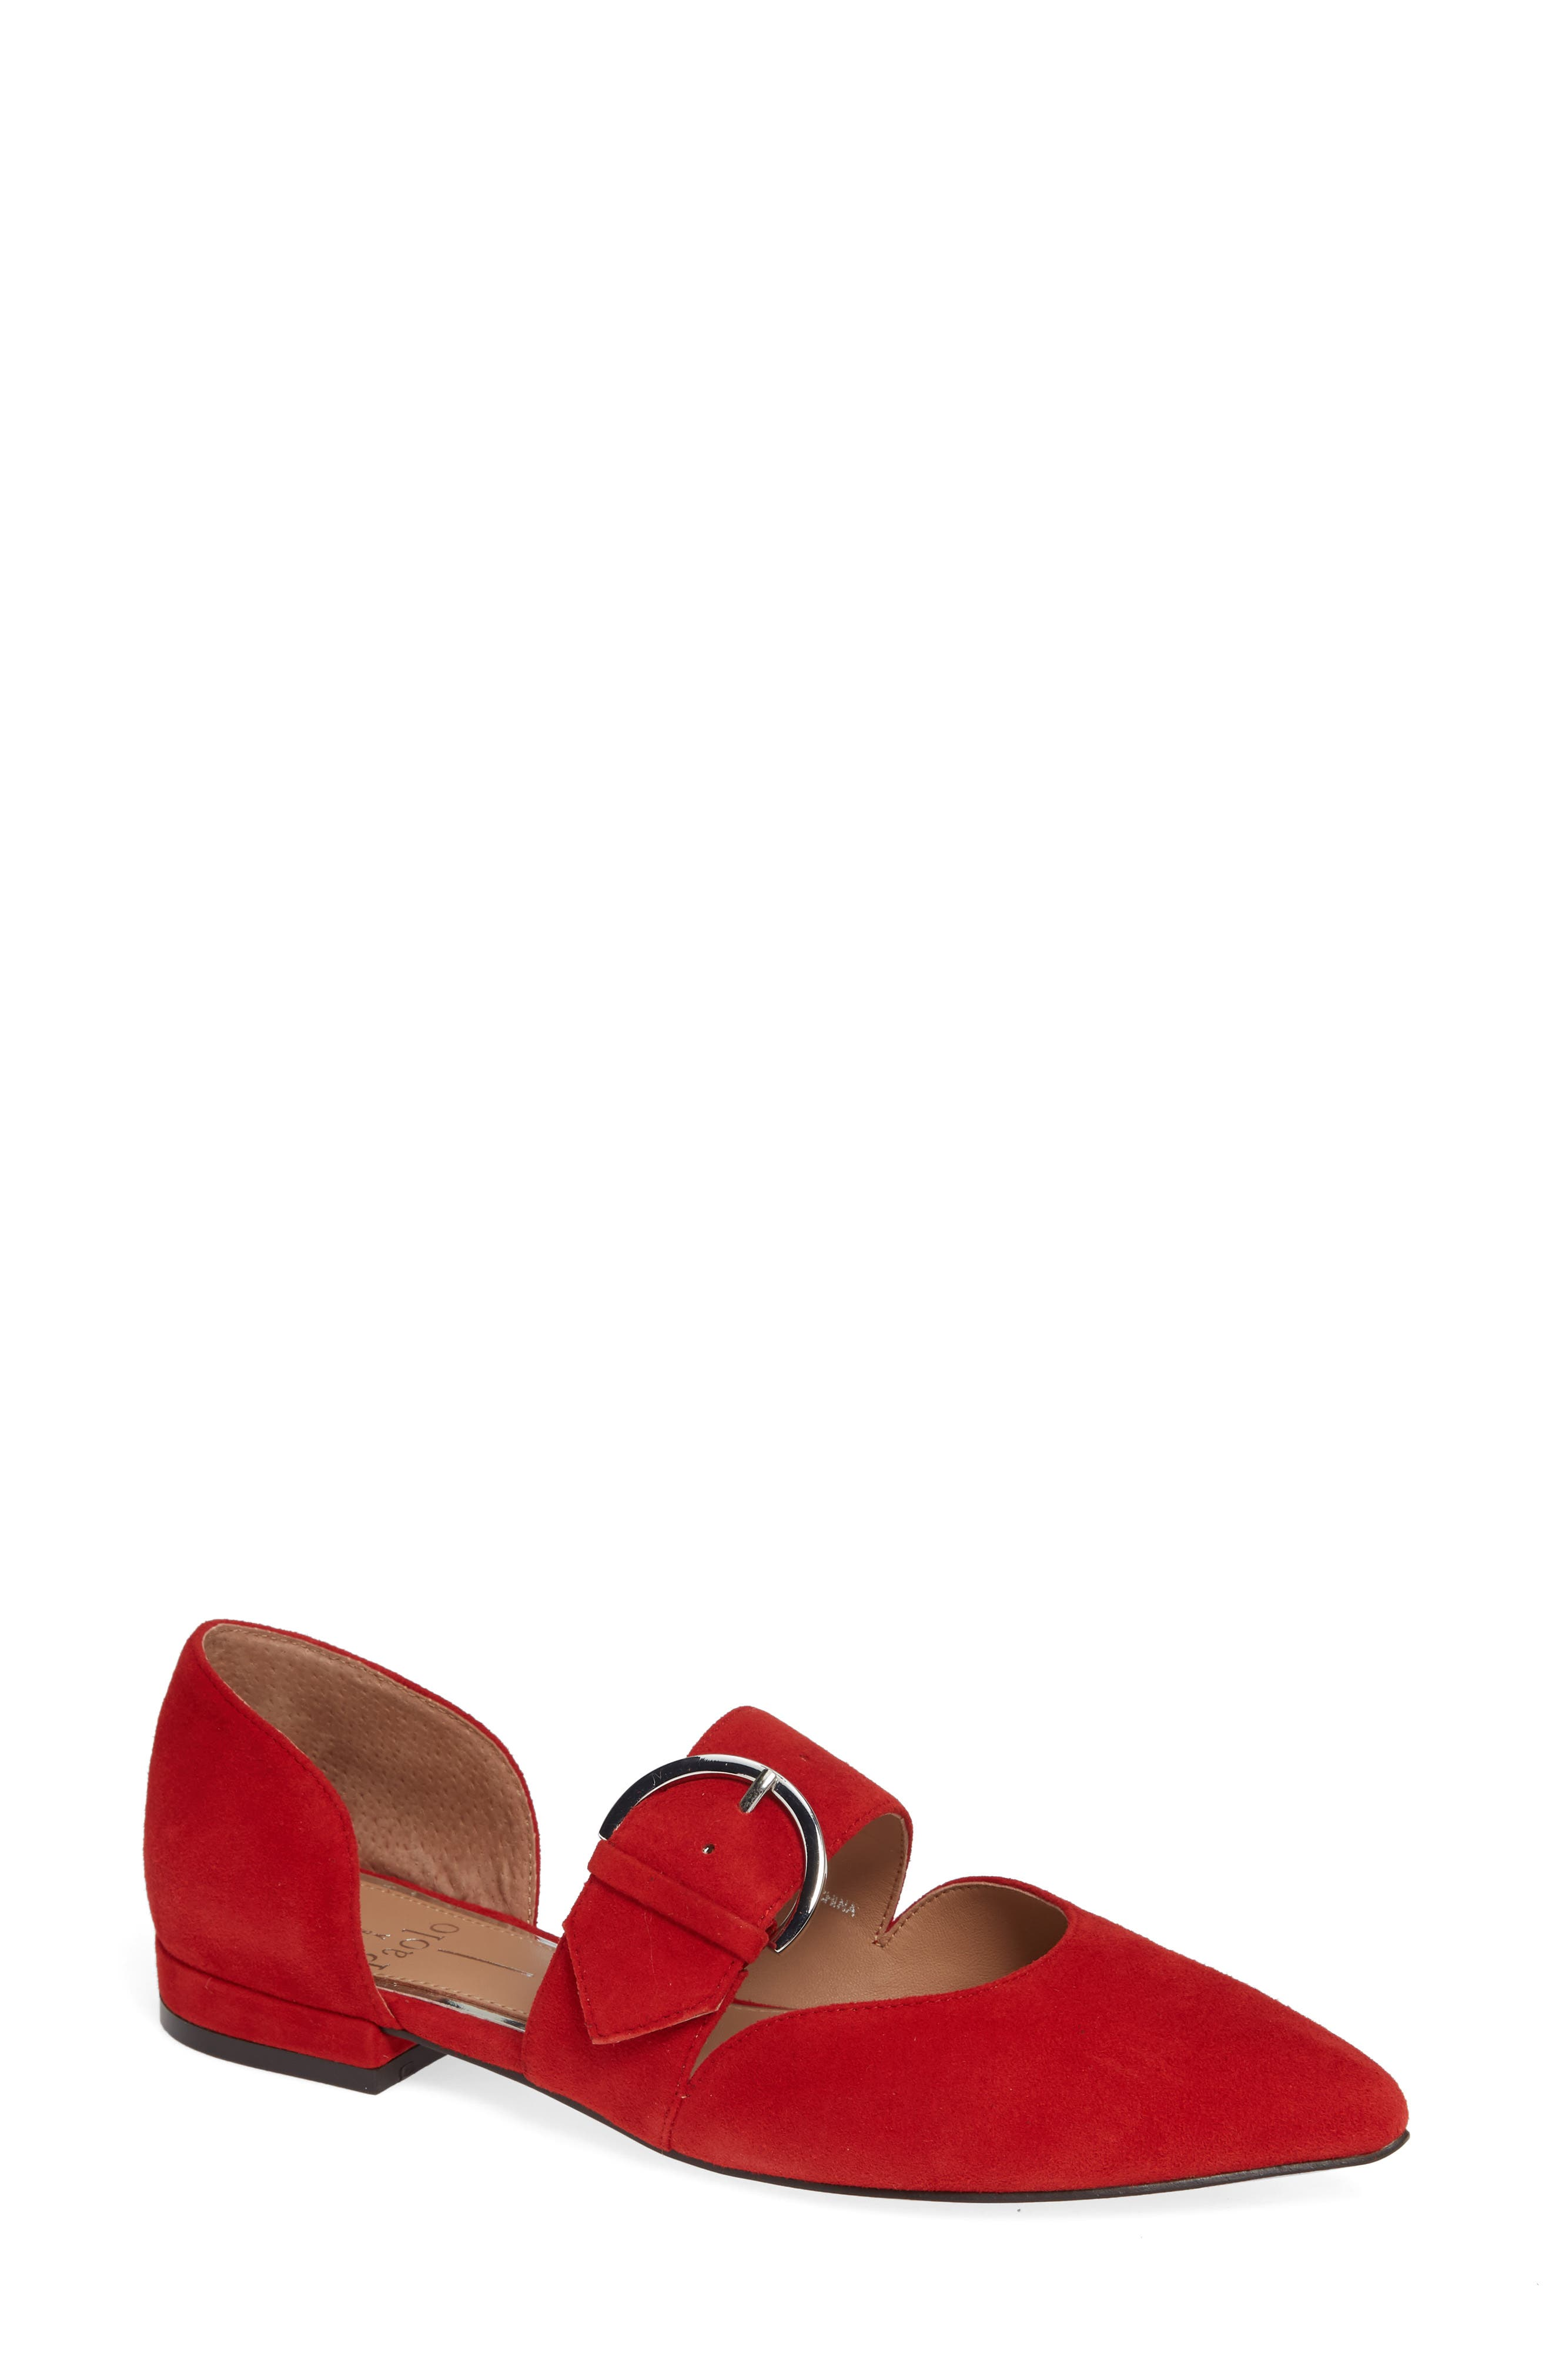 Linea Paolo Dean Pointy Toe Flat, Red